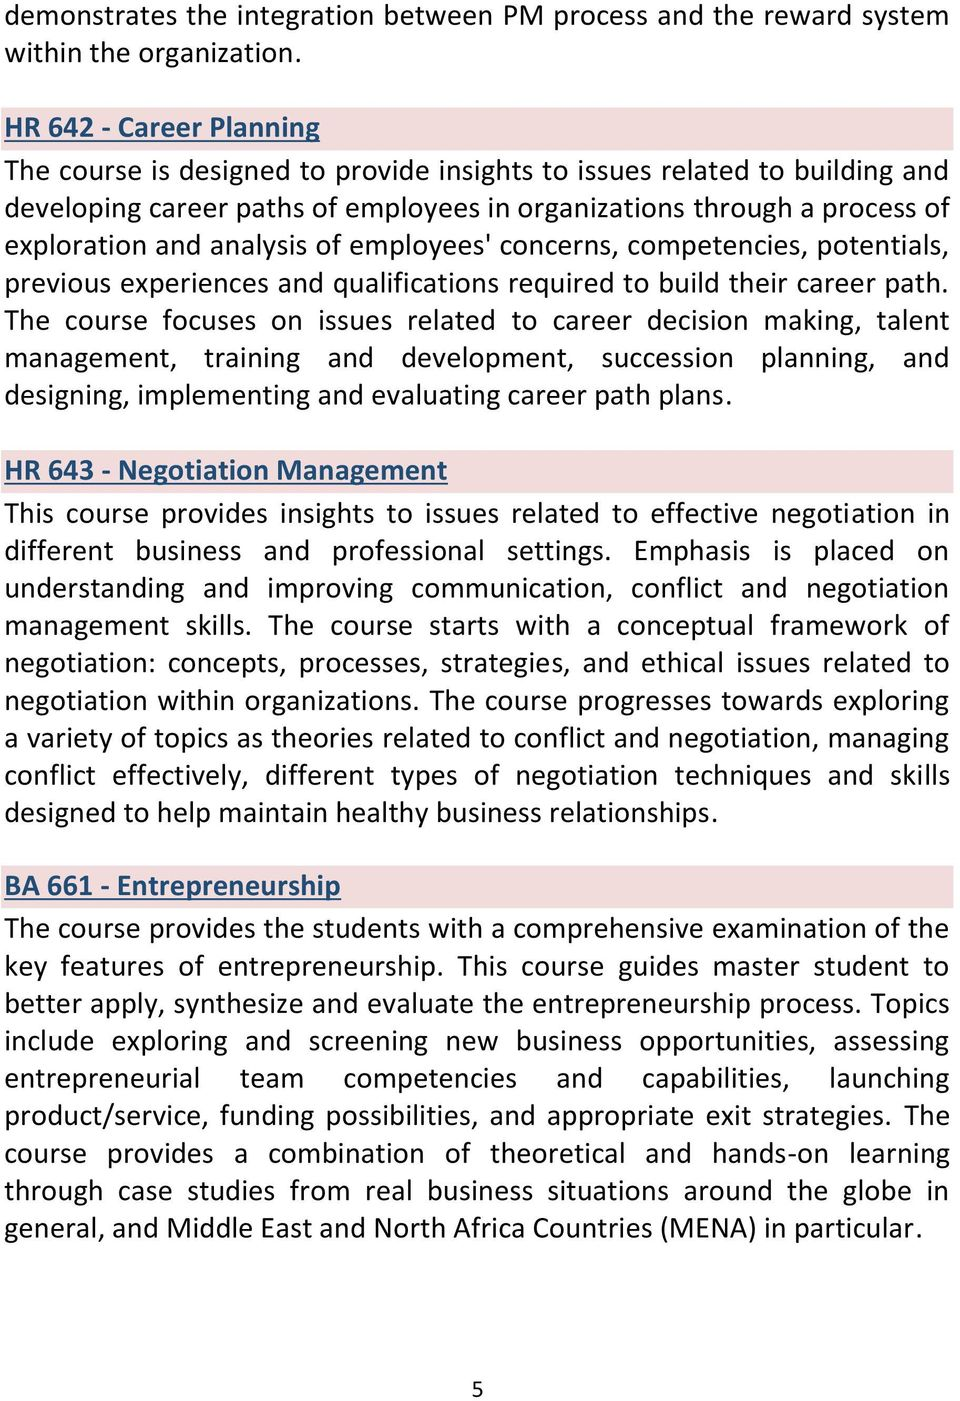 analysis of employees' concerns, competencies, potentials, previous experiences and qualifications required to build their career path.